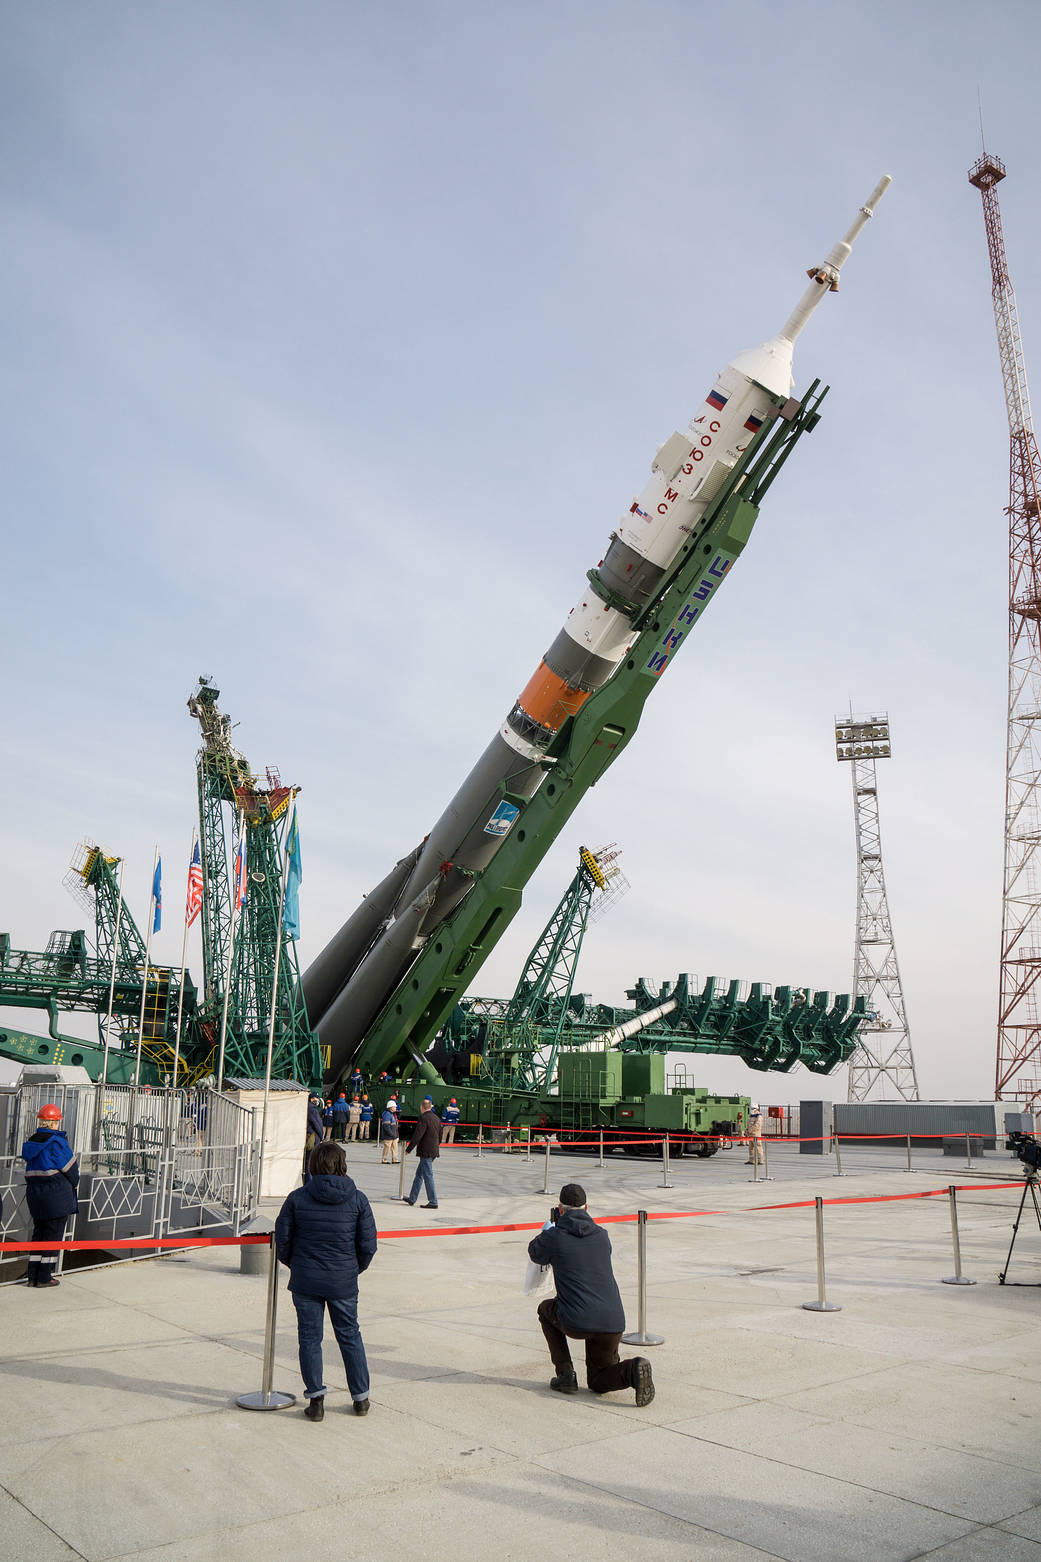 Expedition 63 To International Space Station Successfully Launches From Baikonur: Video And Photos